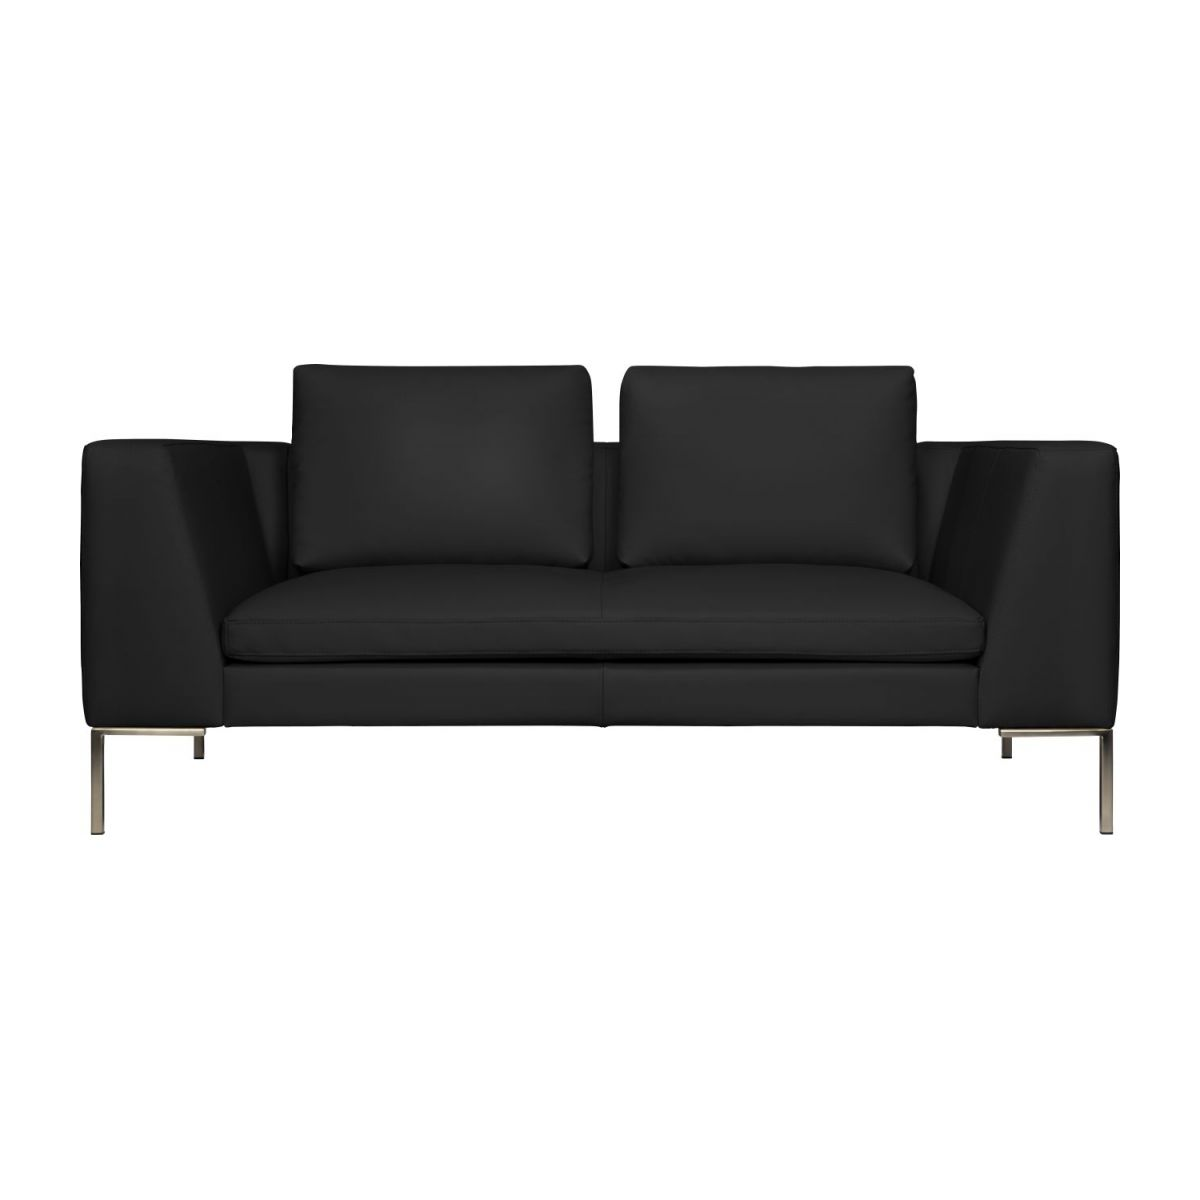 2 seater sofa in Eton veined leather, black n°3